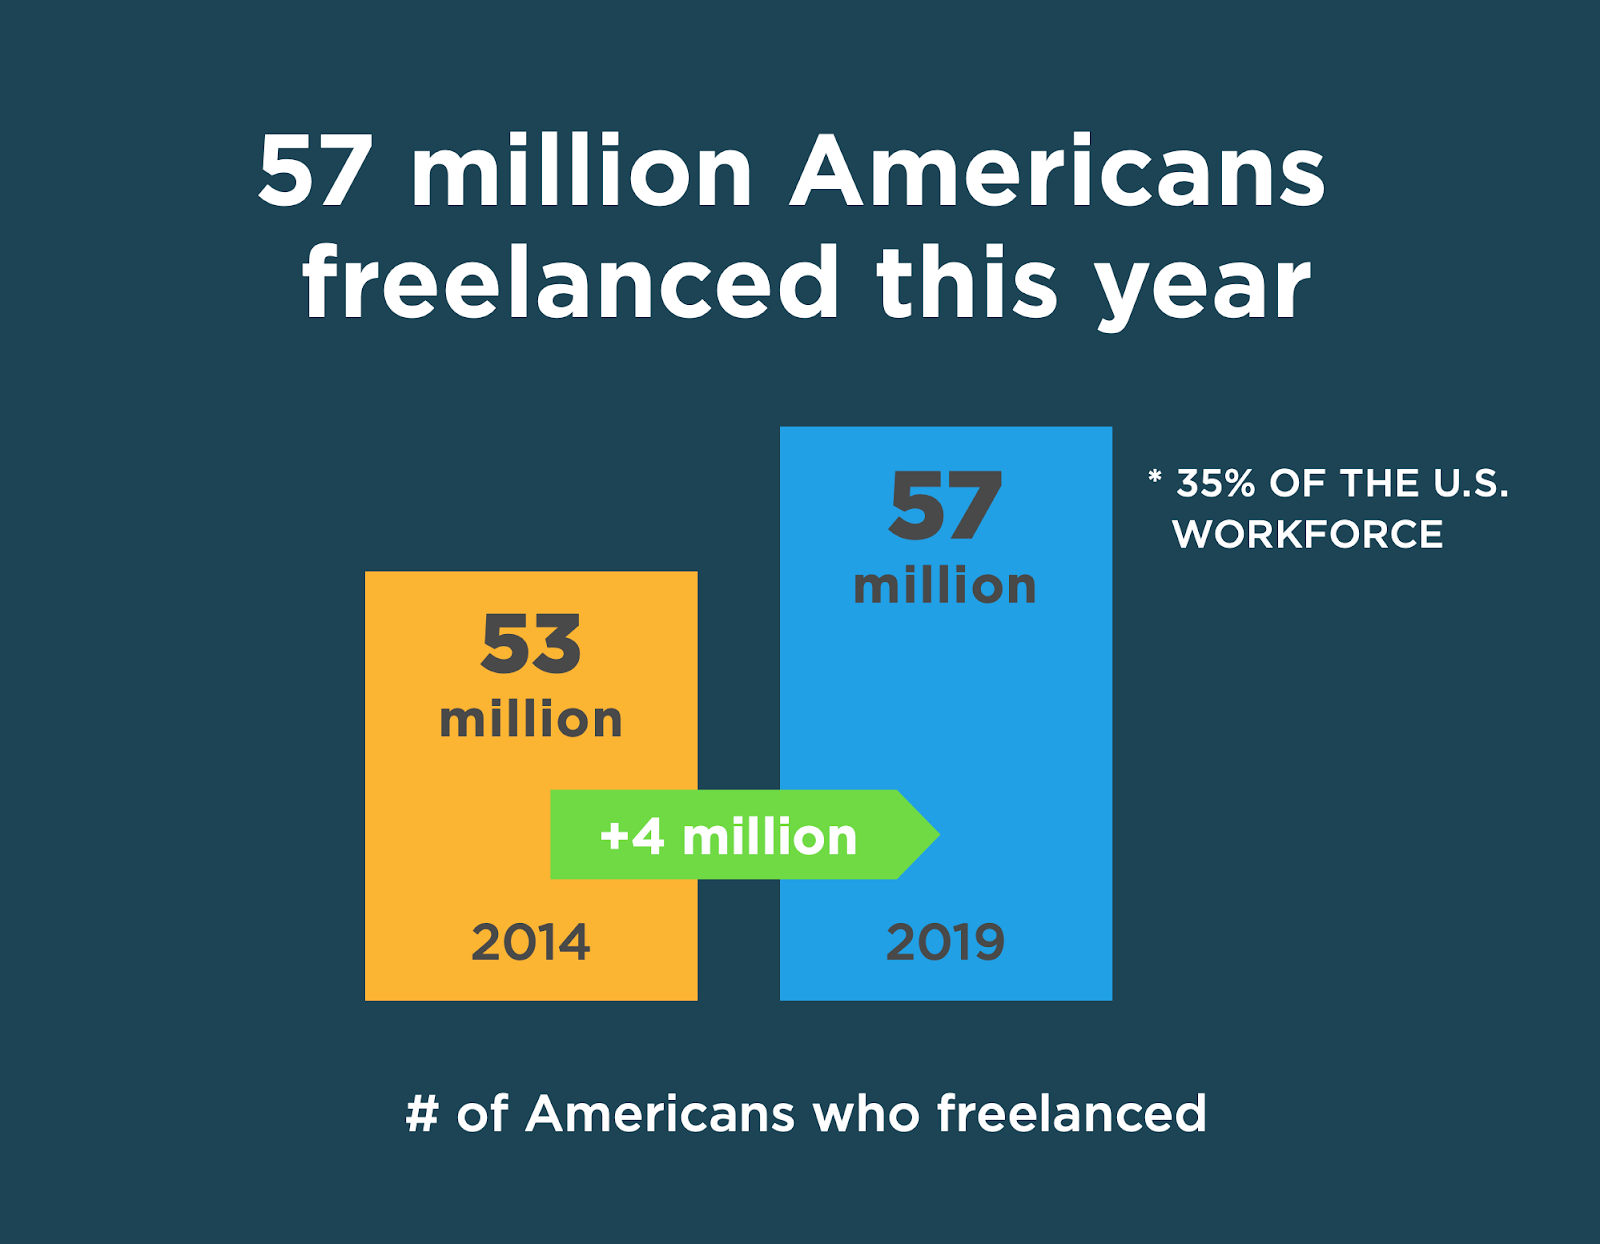 Upwork/Freelancers Union Report on Freelancing in 2019